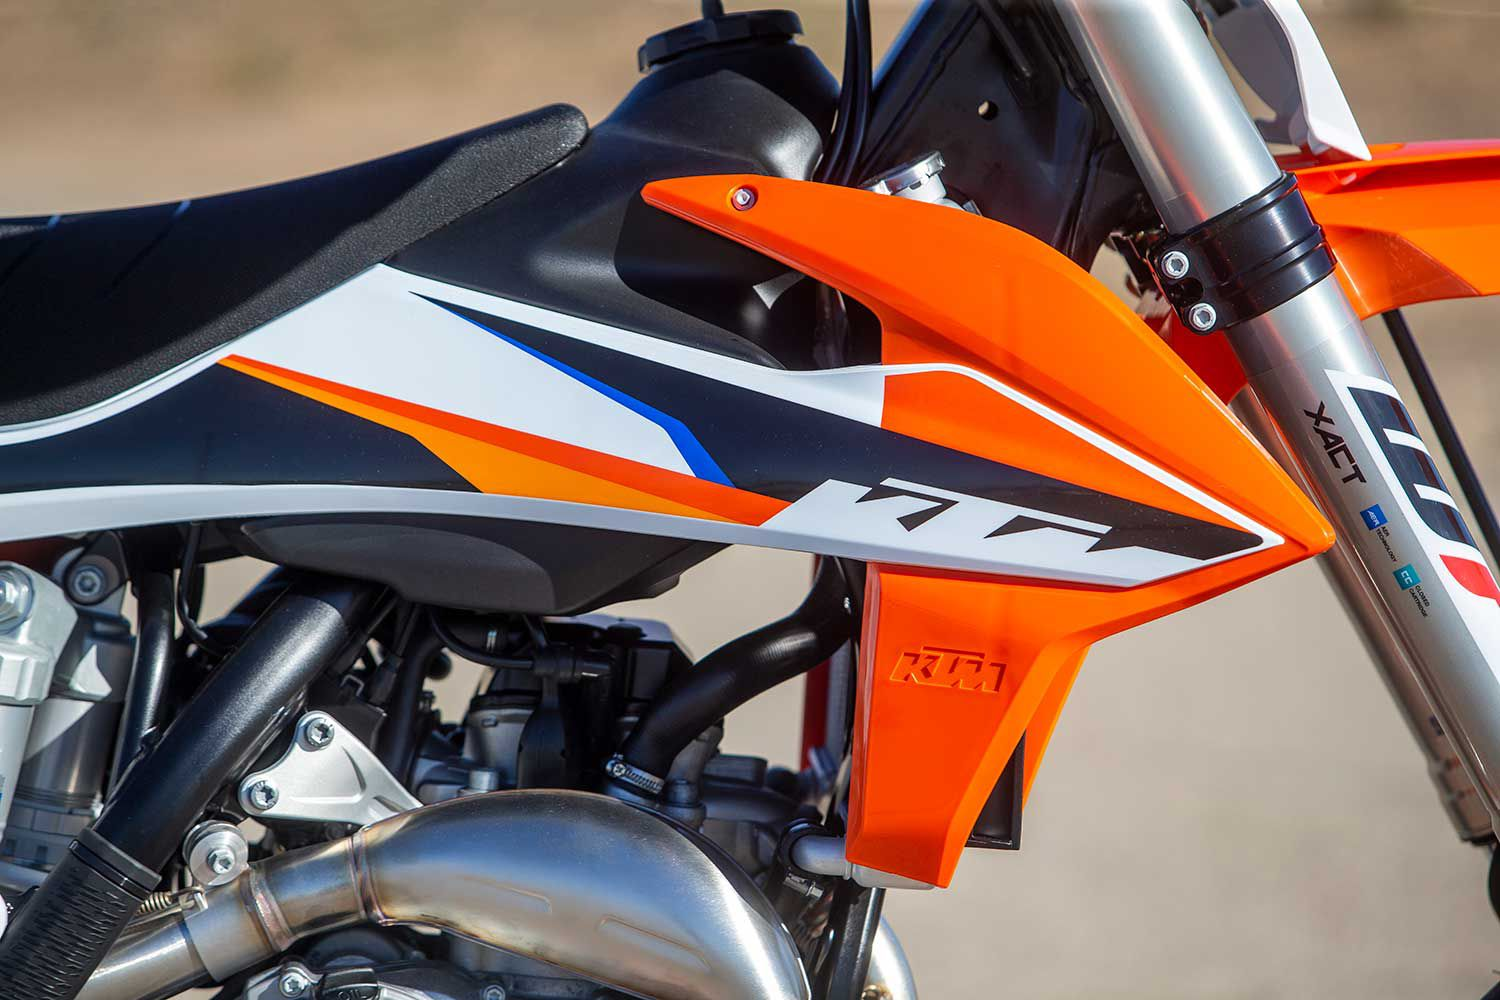 The 450 SMR's body panels make for a motorcycle that fits well and is easier to control. The 1.8-gallon fuel tank is good for a few hours of track riding fun.